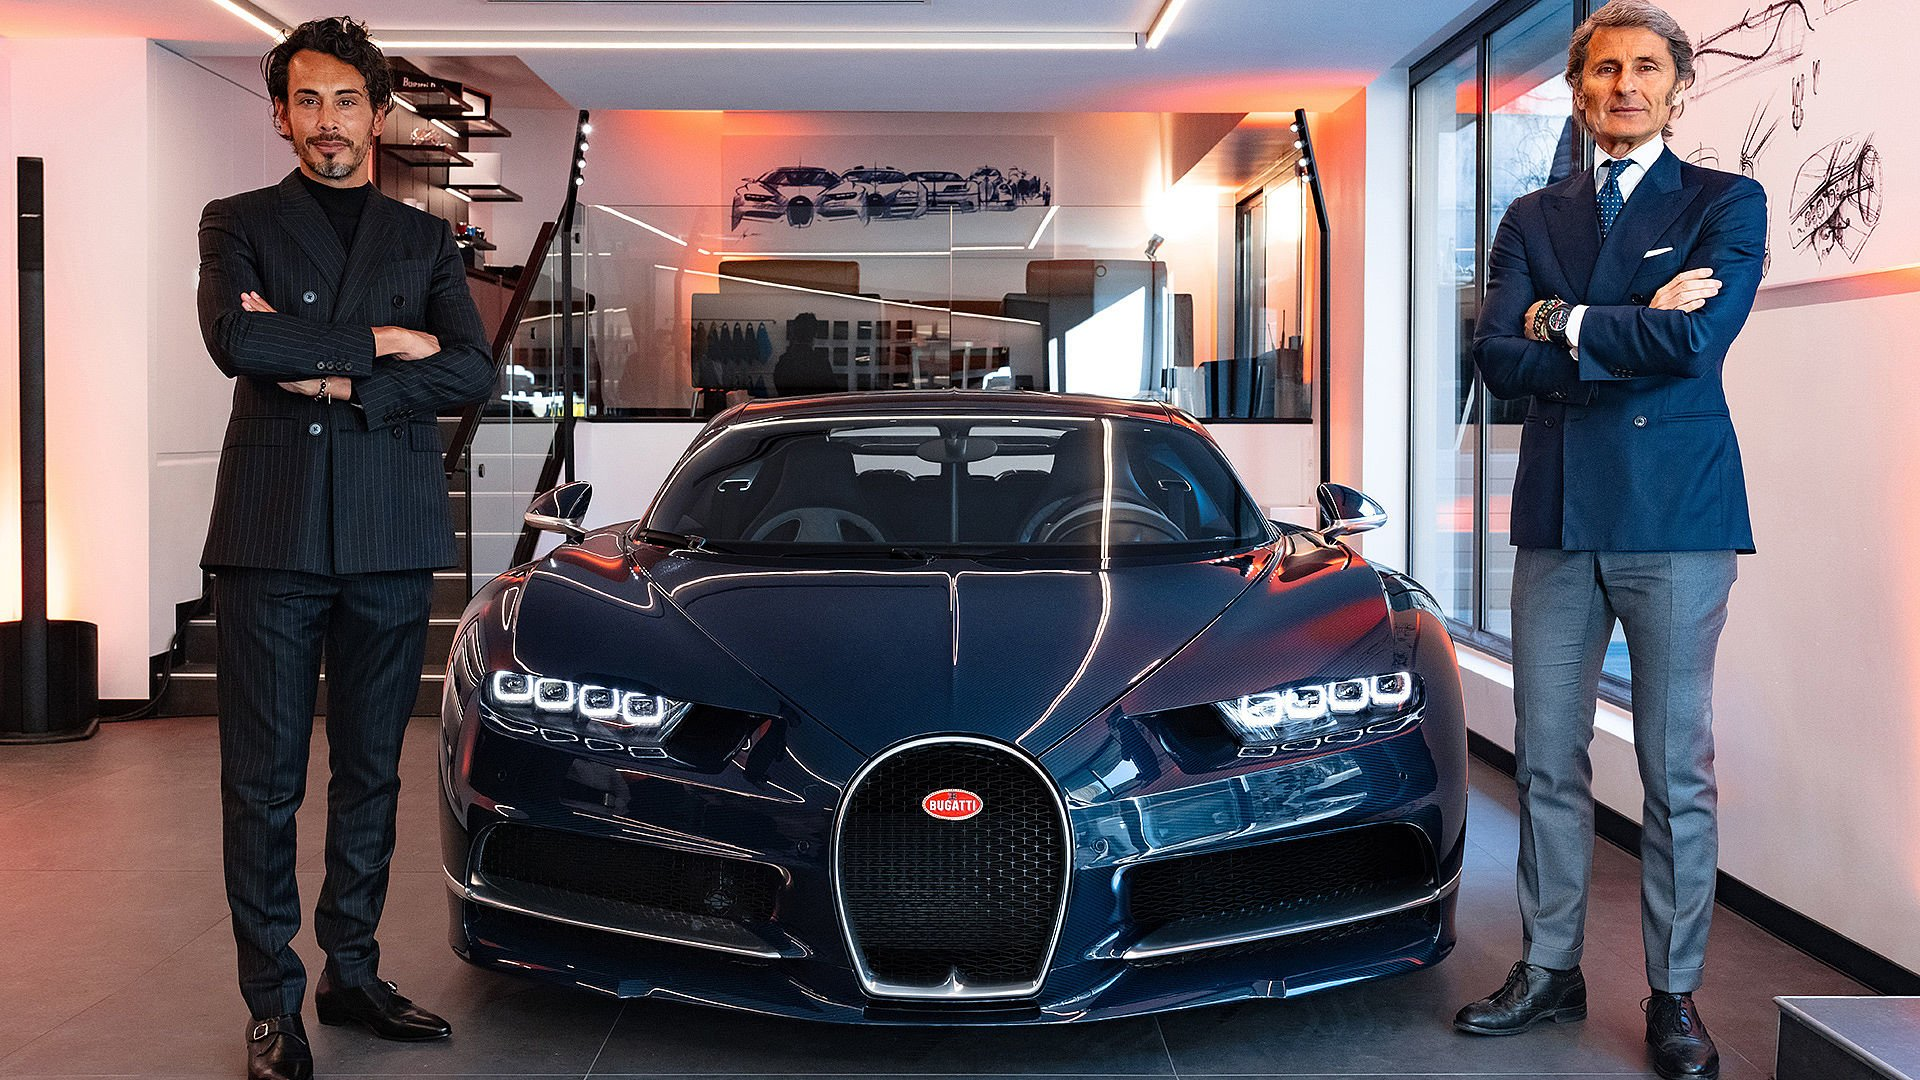 INDUSTRY NEWS: BUGATTI OPENS A NEW SHOWROOM IN PARIS